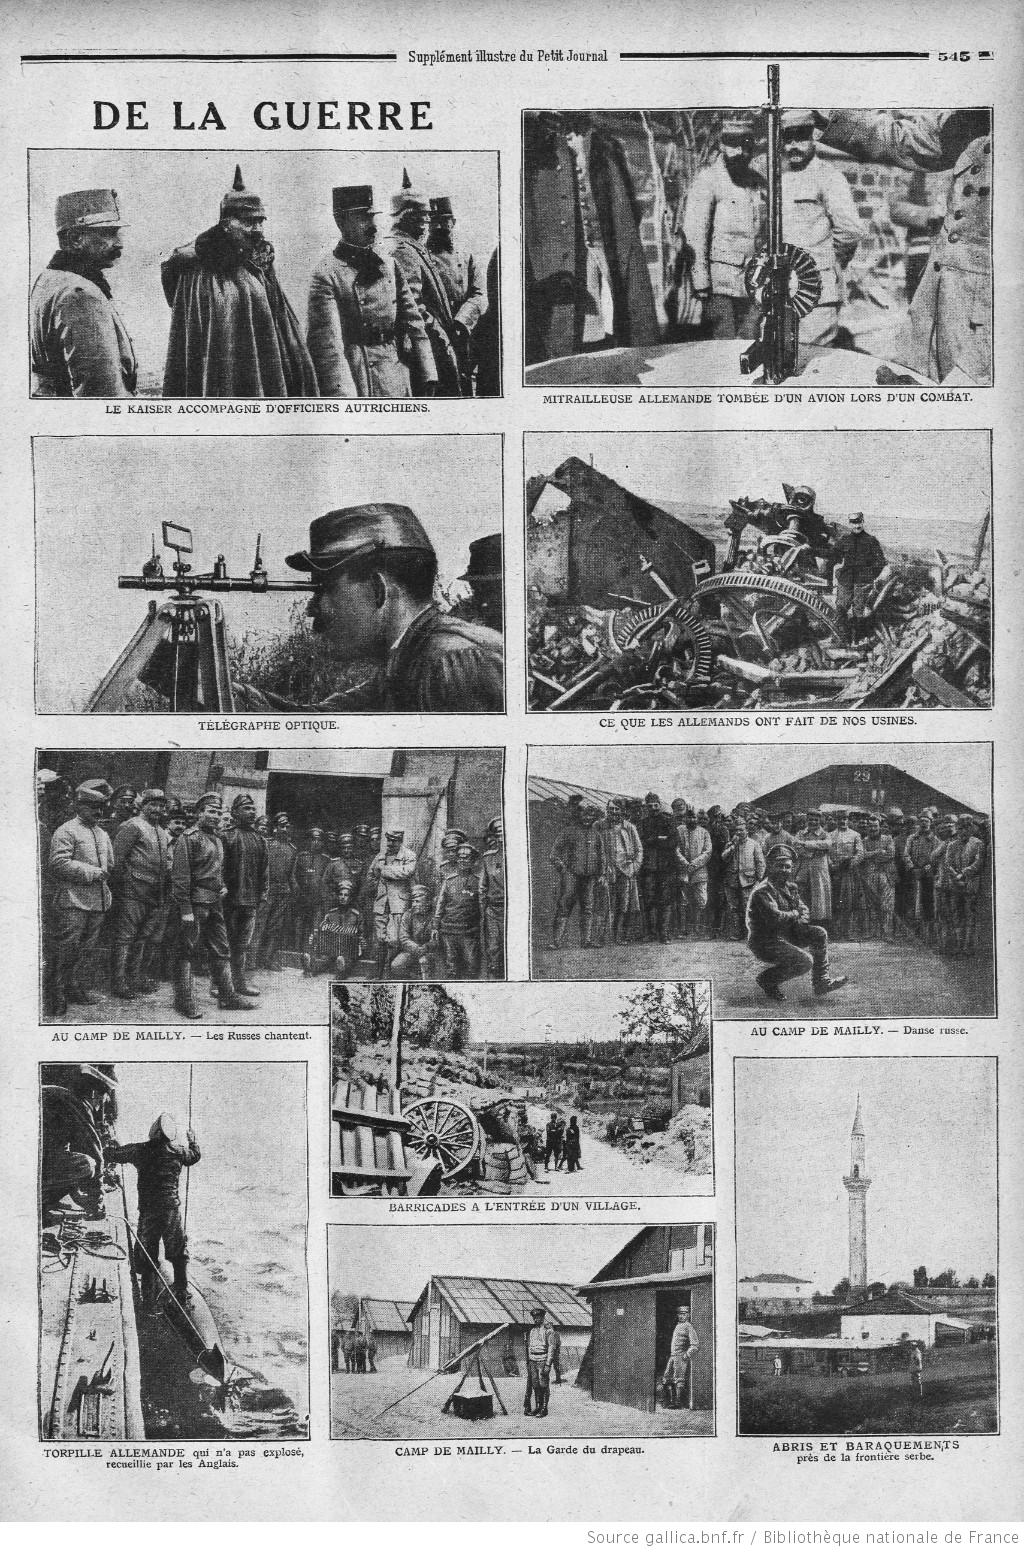 LPJ Illustre 1916-06-18 D.jpg